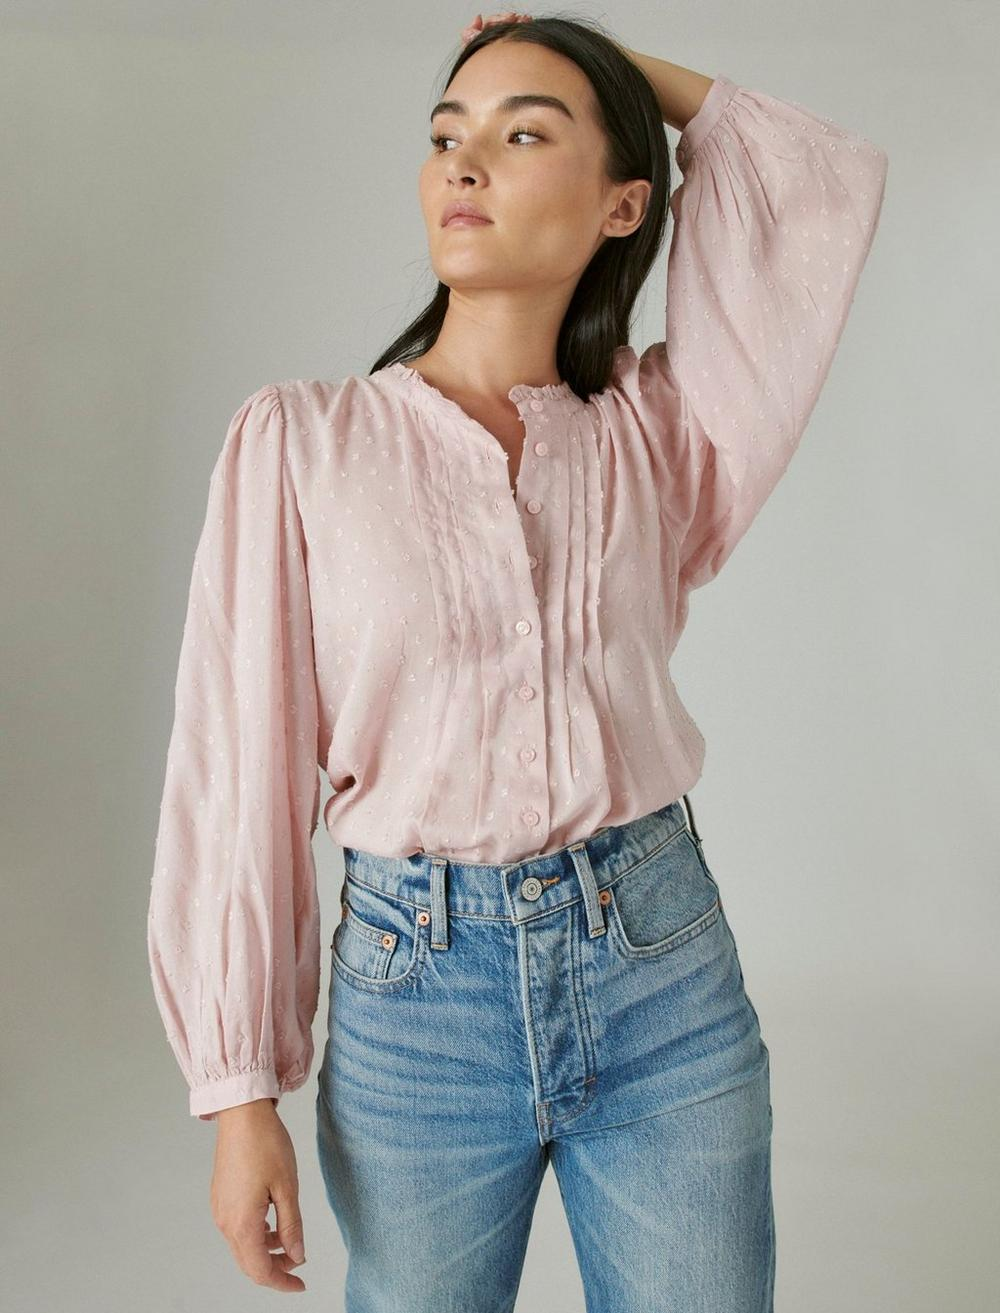 CLIP DOT LONG SLEEVE BUTTON UP BLOUSE, image 1